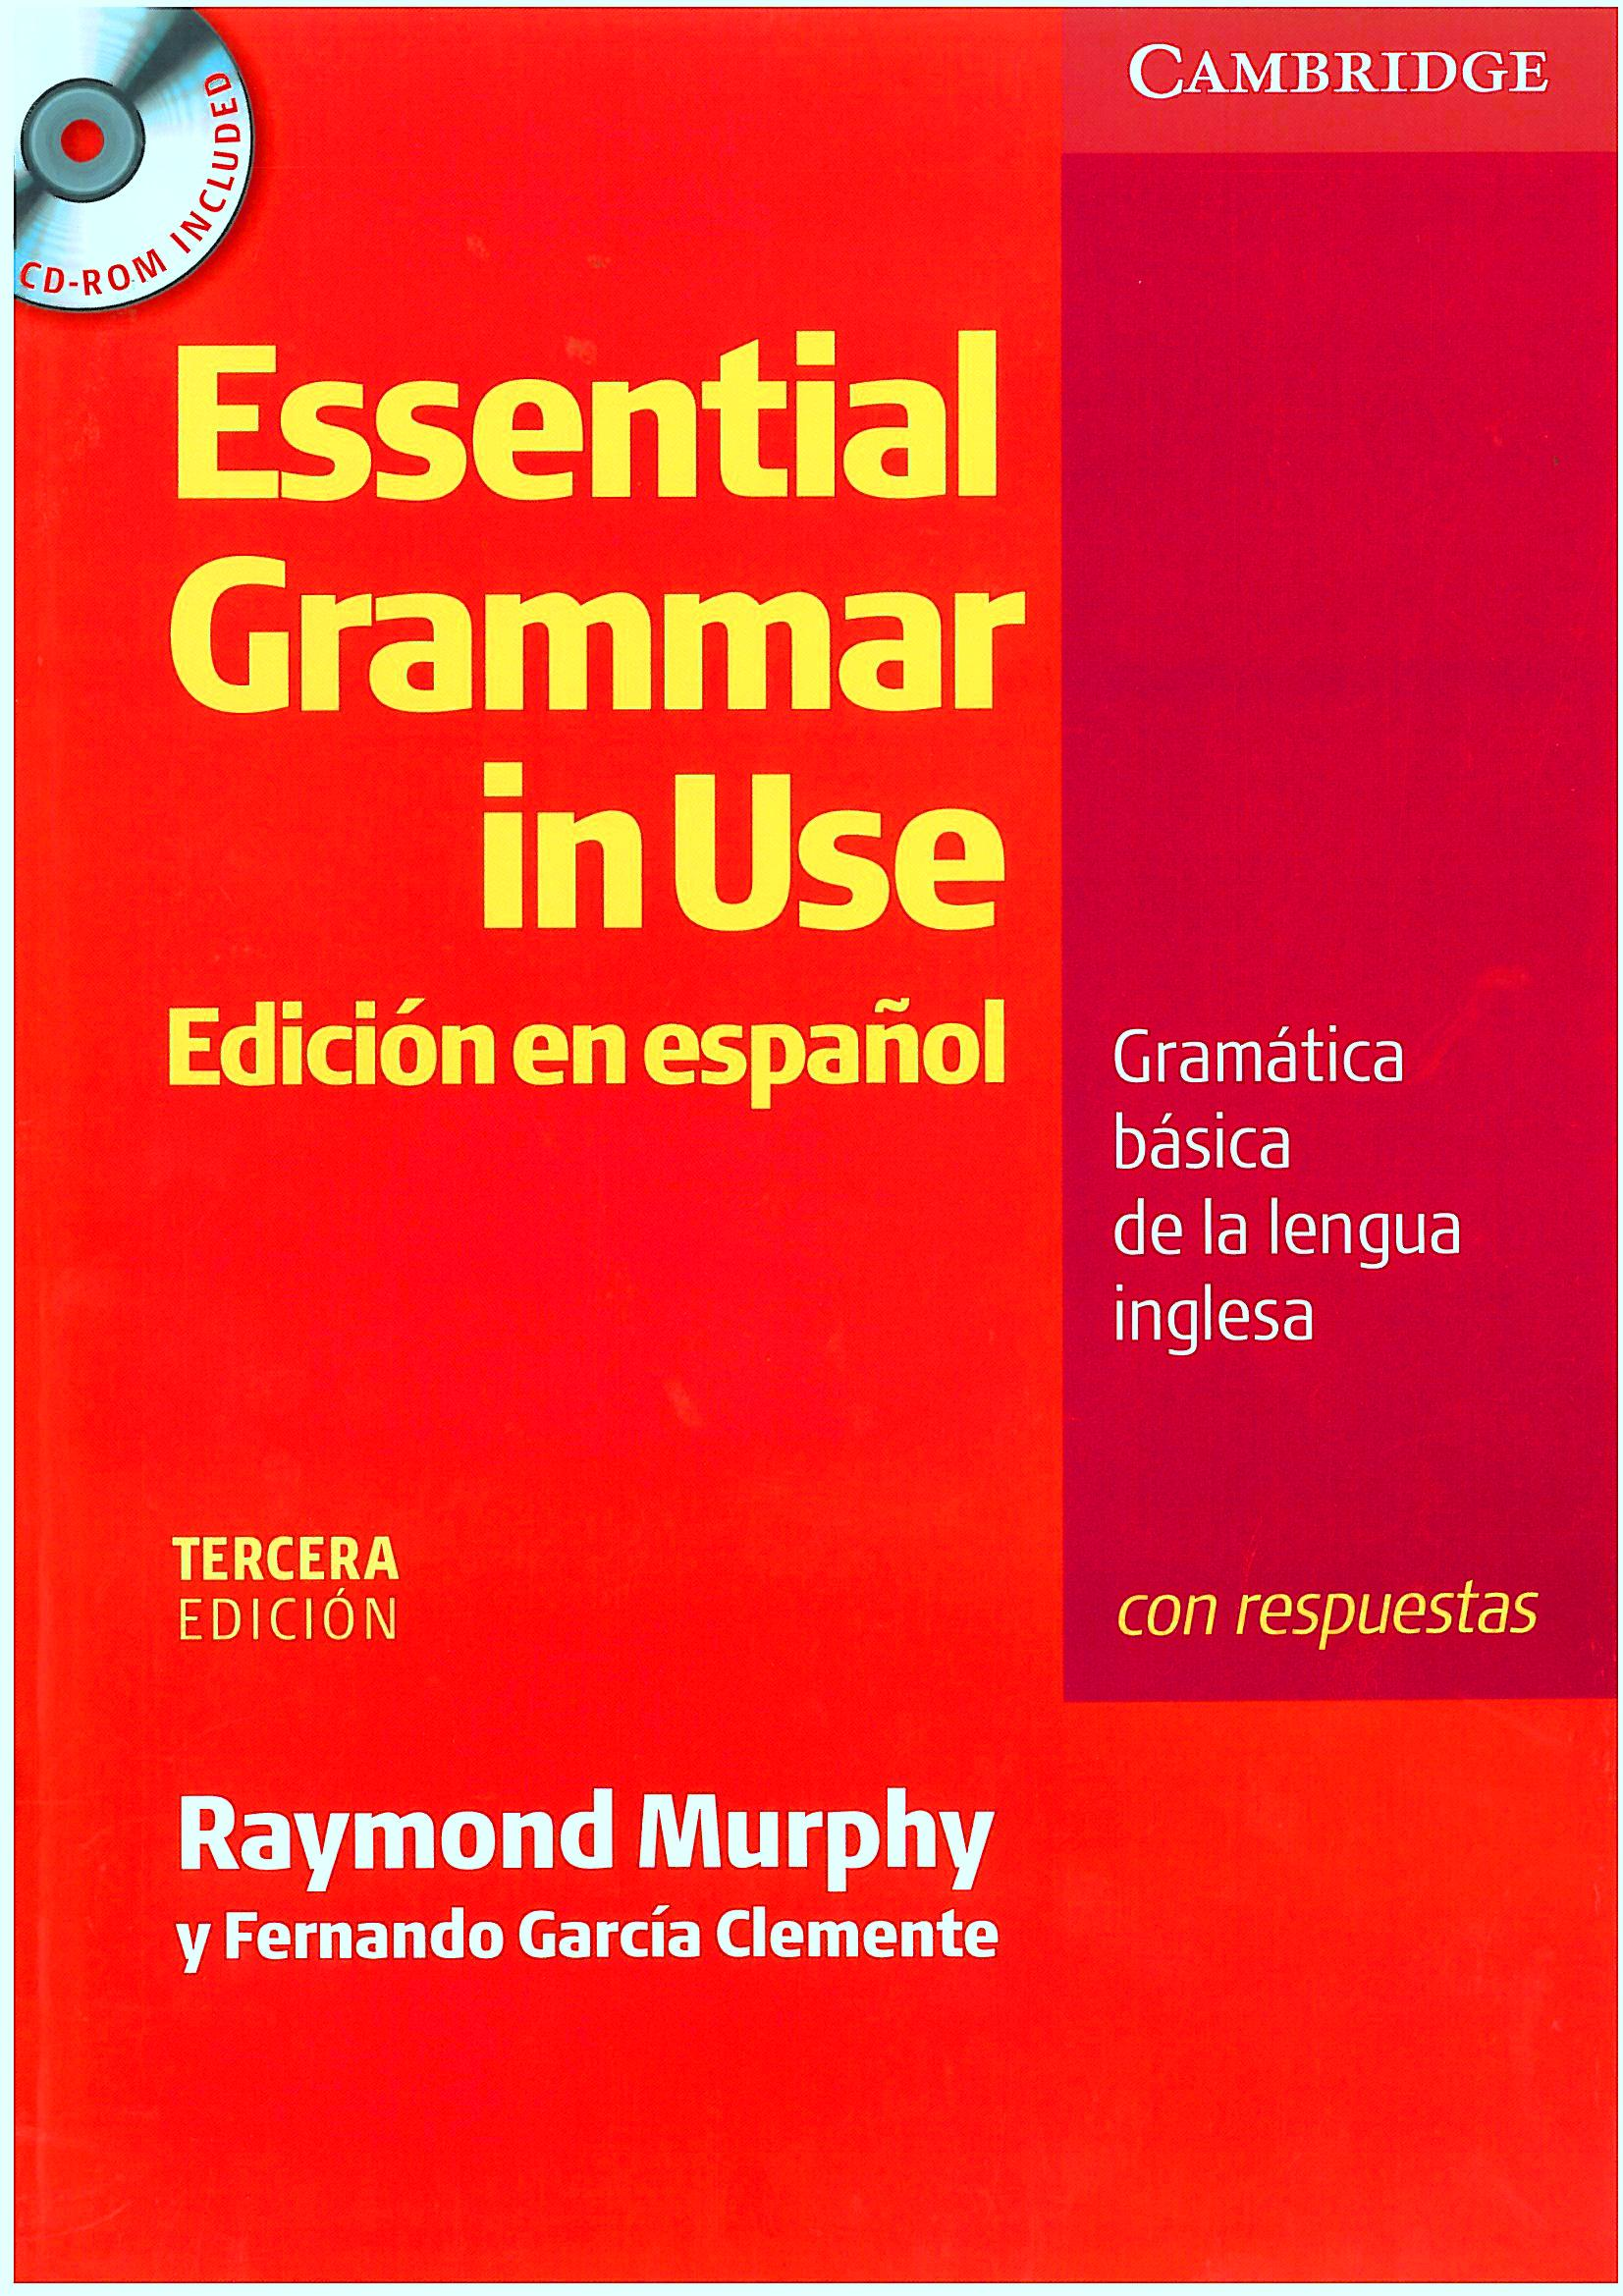 essential-grammar-in-use.jpg